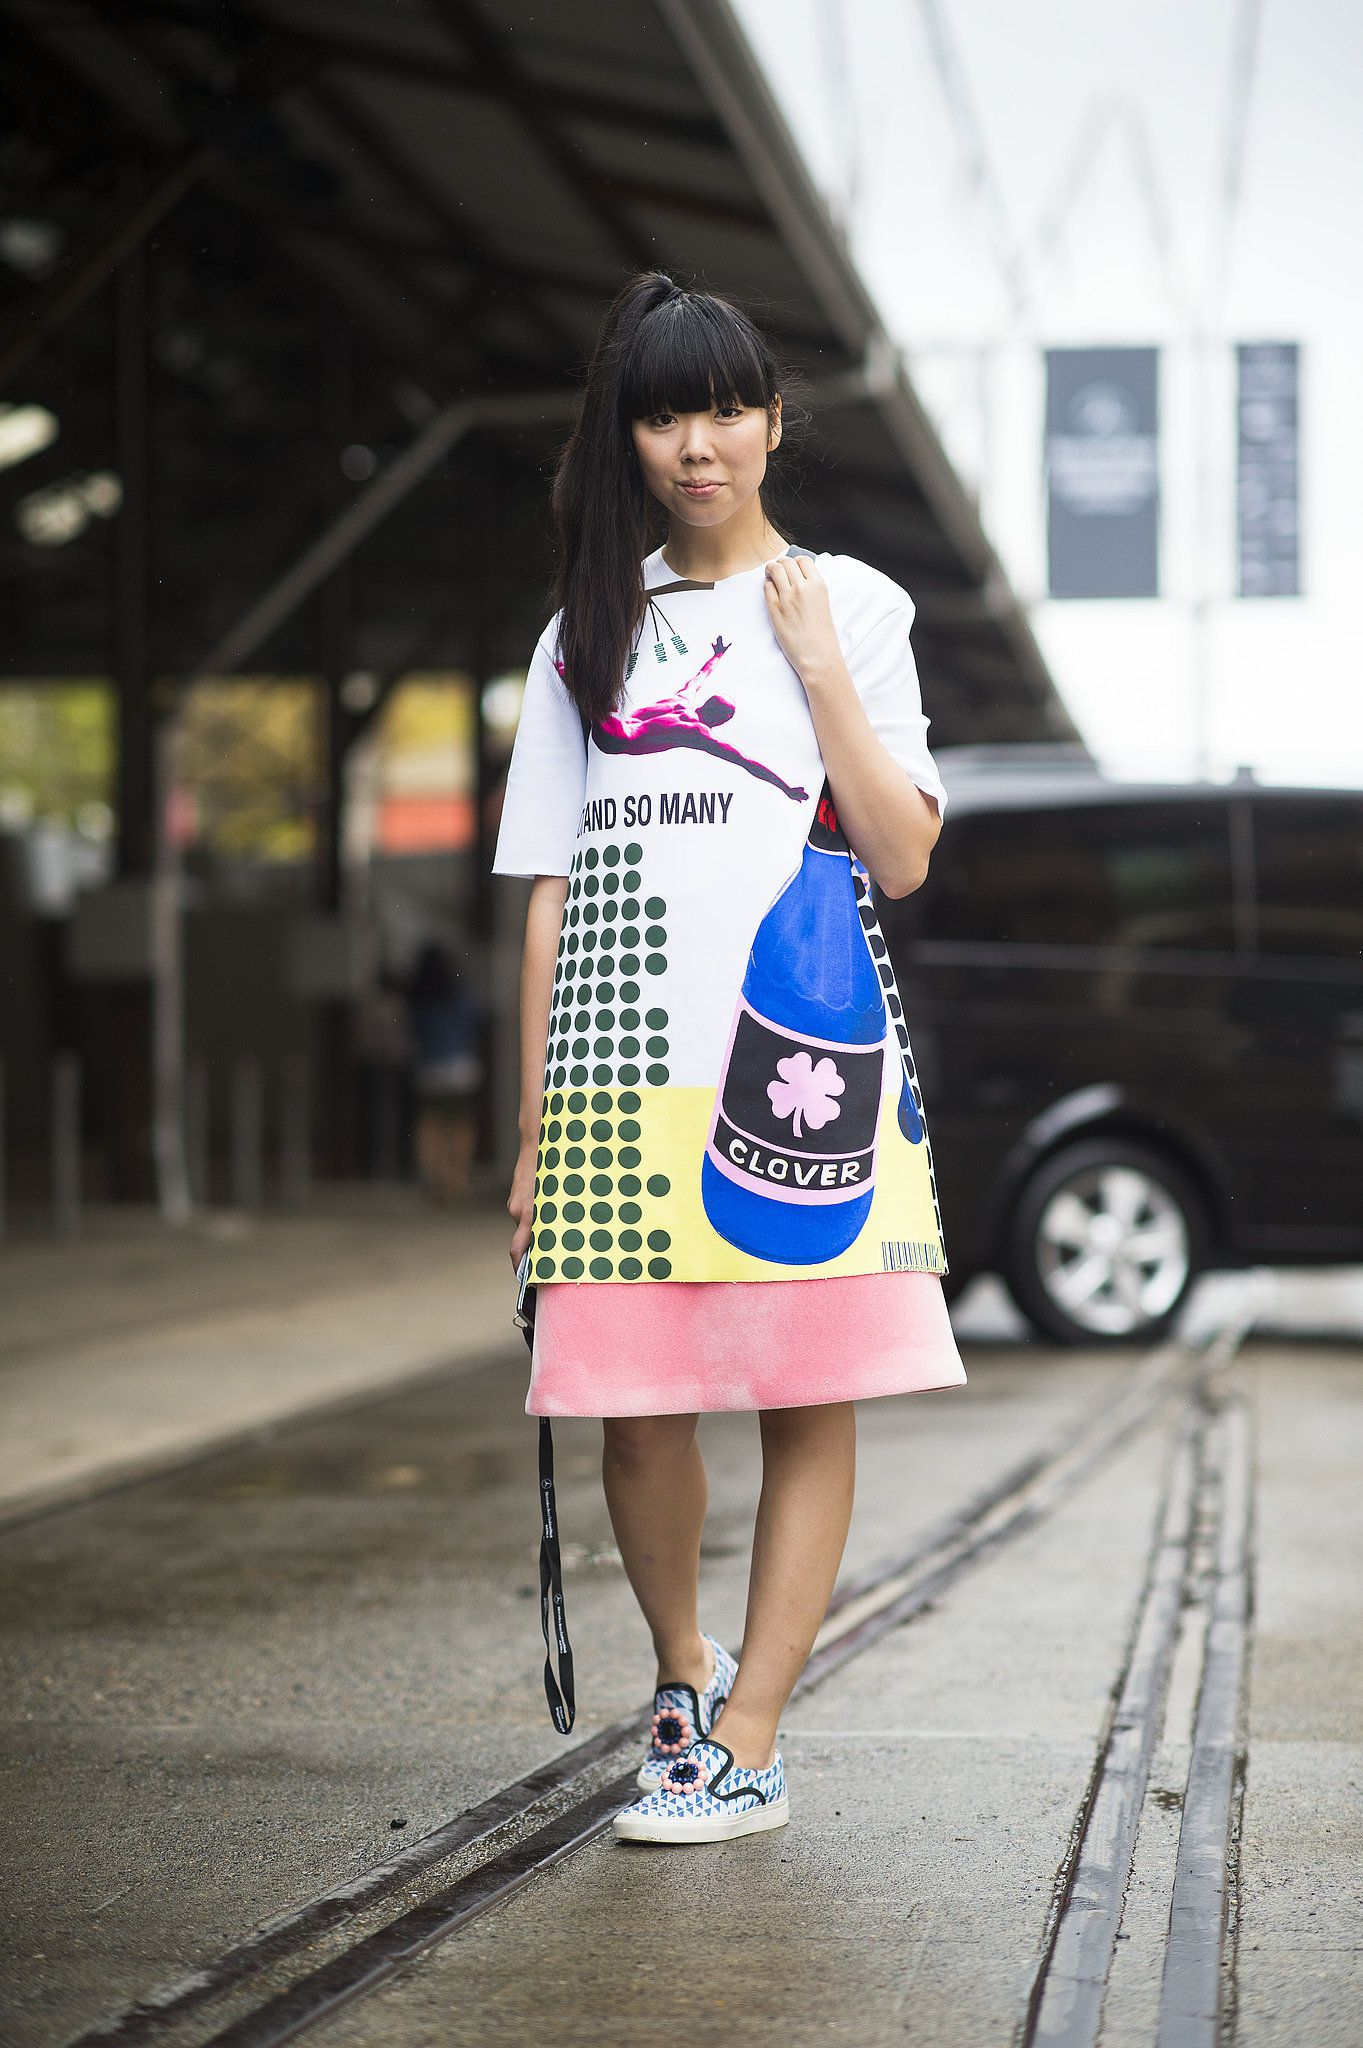 It doesn't get cooler than Susie Bubble's kicks. Sydney Fashion Week #StreetStyle                                                                                                1 / 51